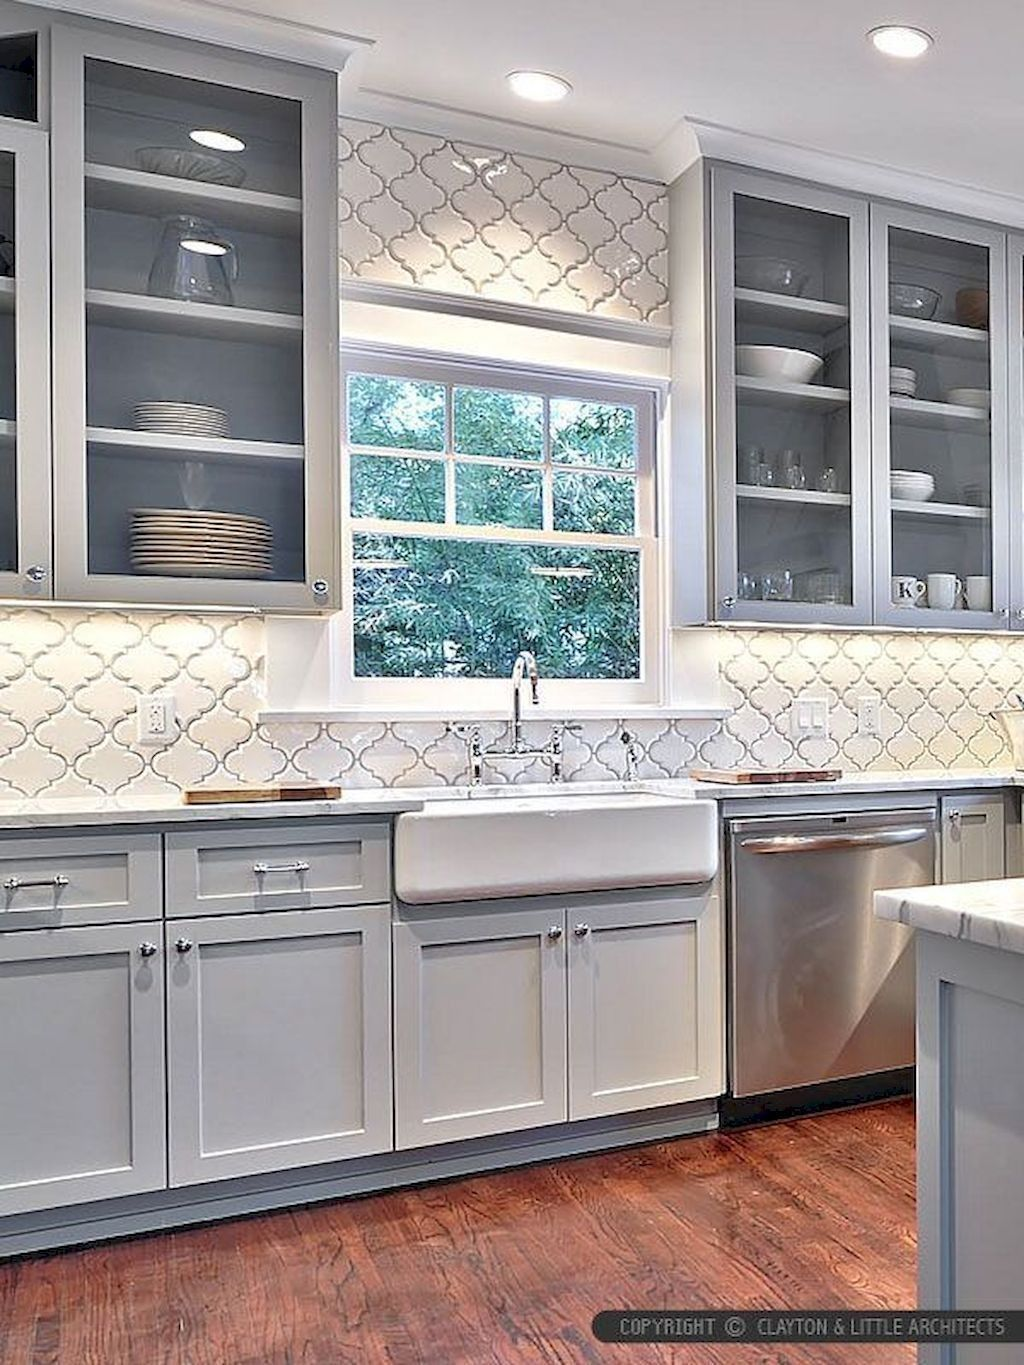 Pinterest Yamasaki Farmhouse Kitchen Backsplash Kitchen Design Farmhouse Kitchen Cabinets